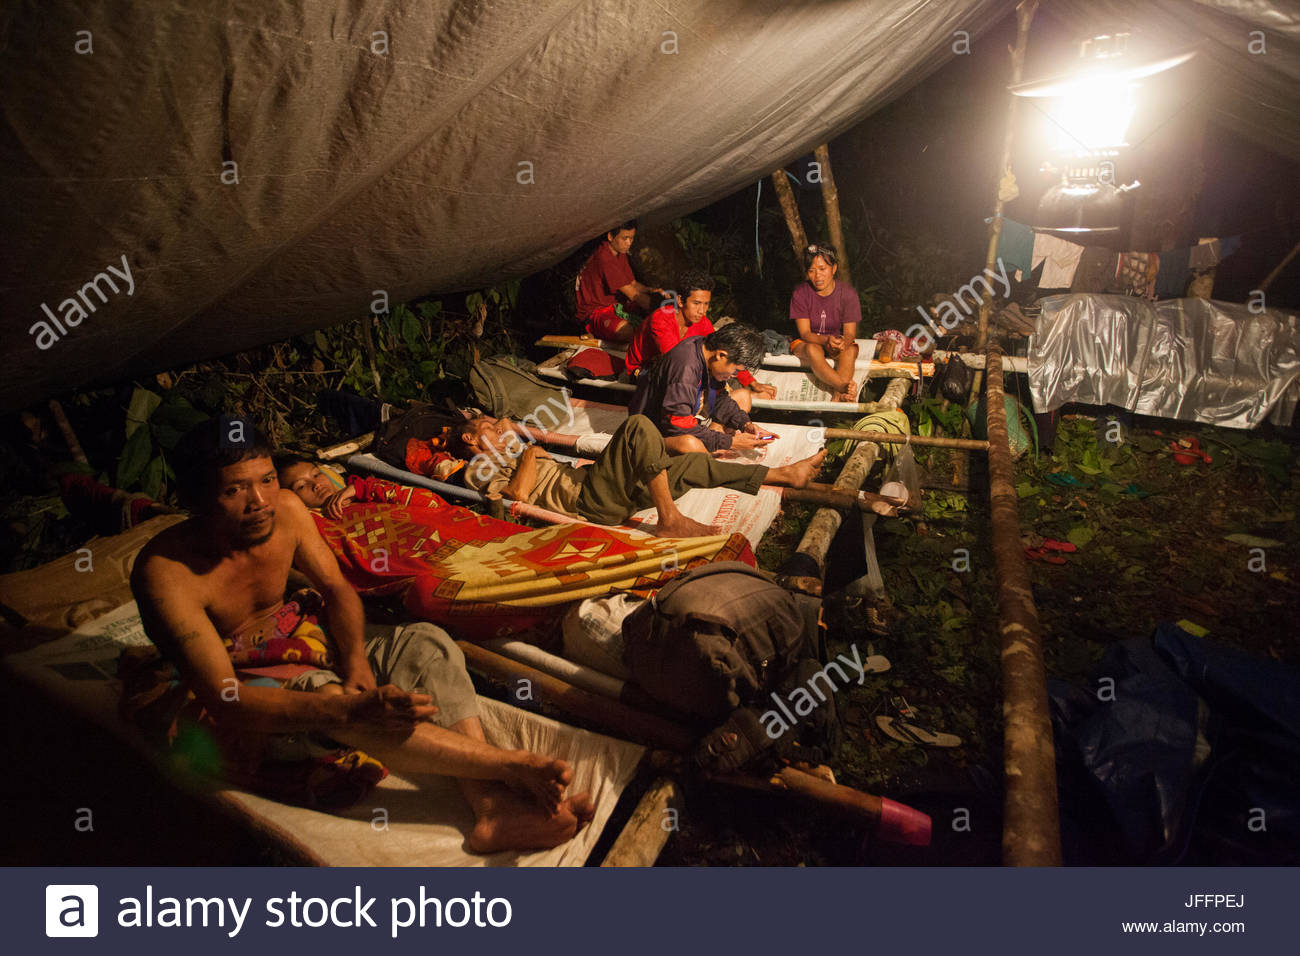 Dayak guides relax on their hammocks inside a research camp tent during a rainforest expedition. - Stock Image